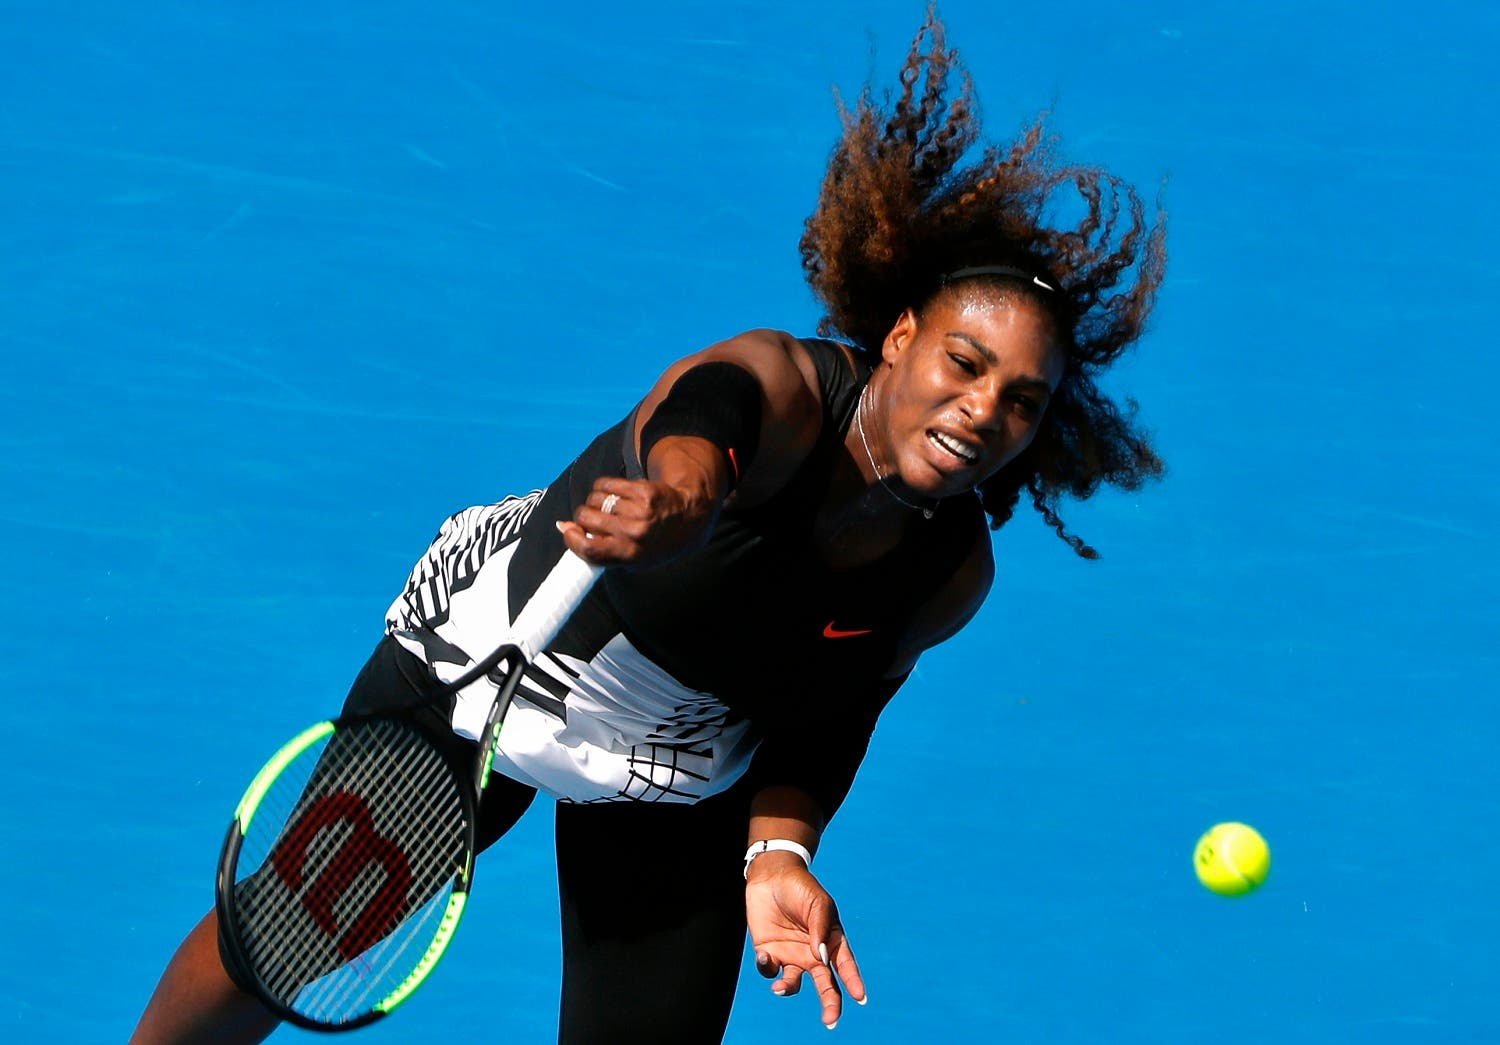 Serena Williams serves during her fourth round match against Czech Republic's Barbora Strycova. Reuters